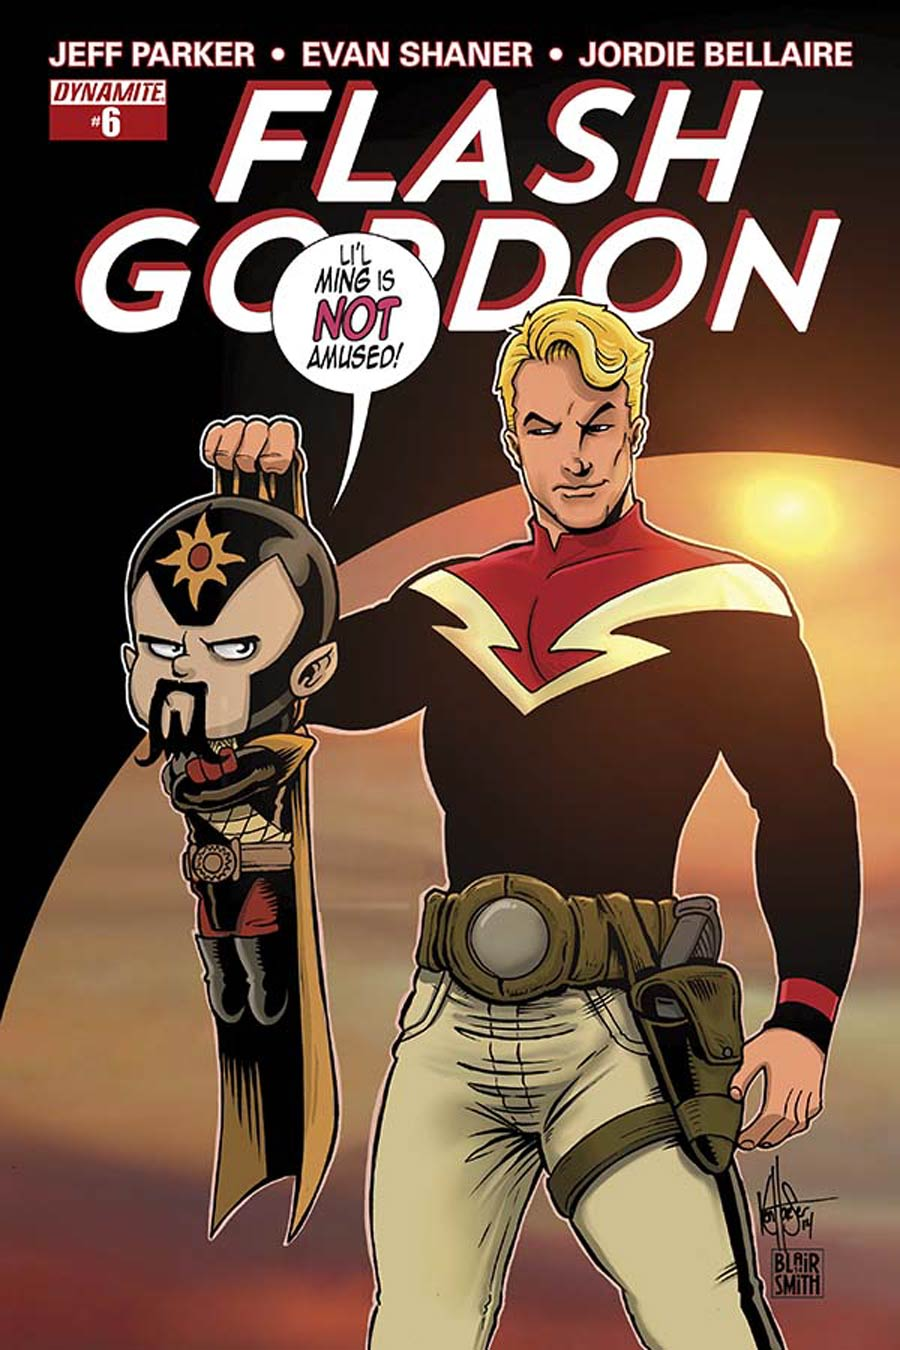 Flash Gordon Vol 7 #6 Cover B Variant Ken Haeser Subscription Cover